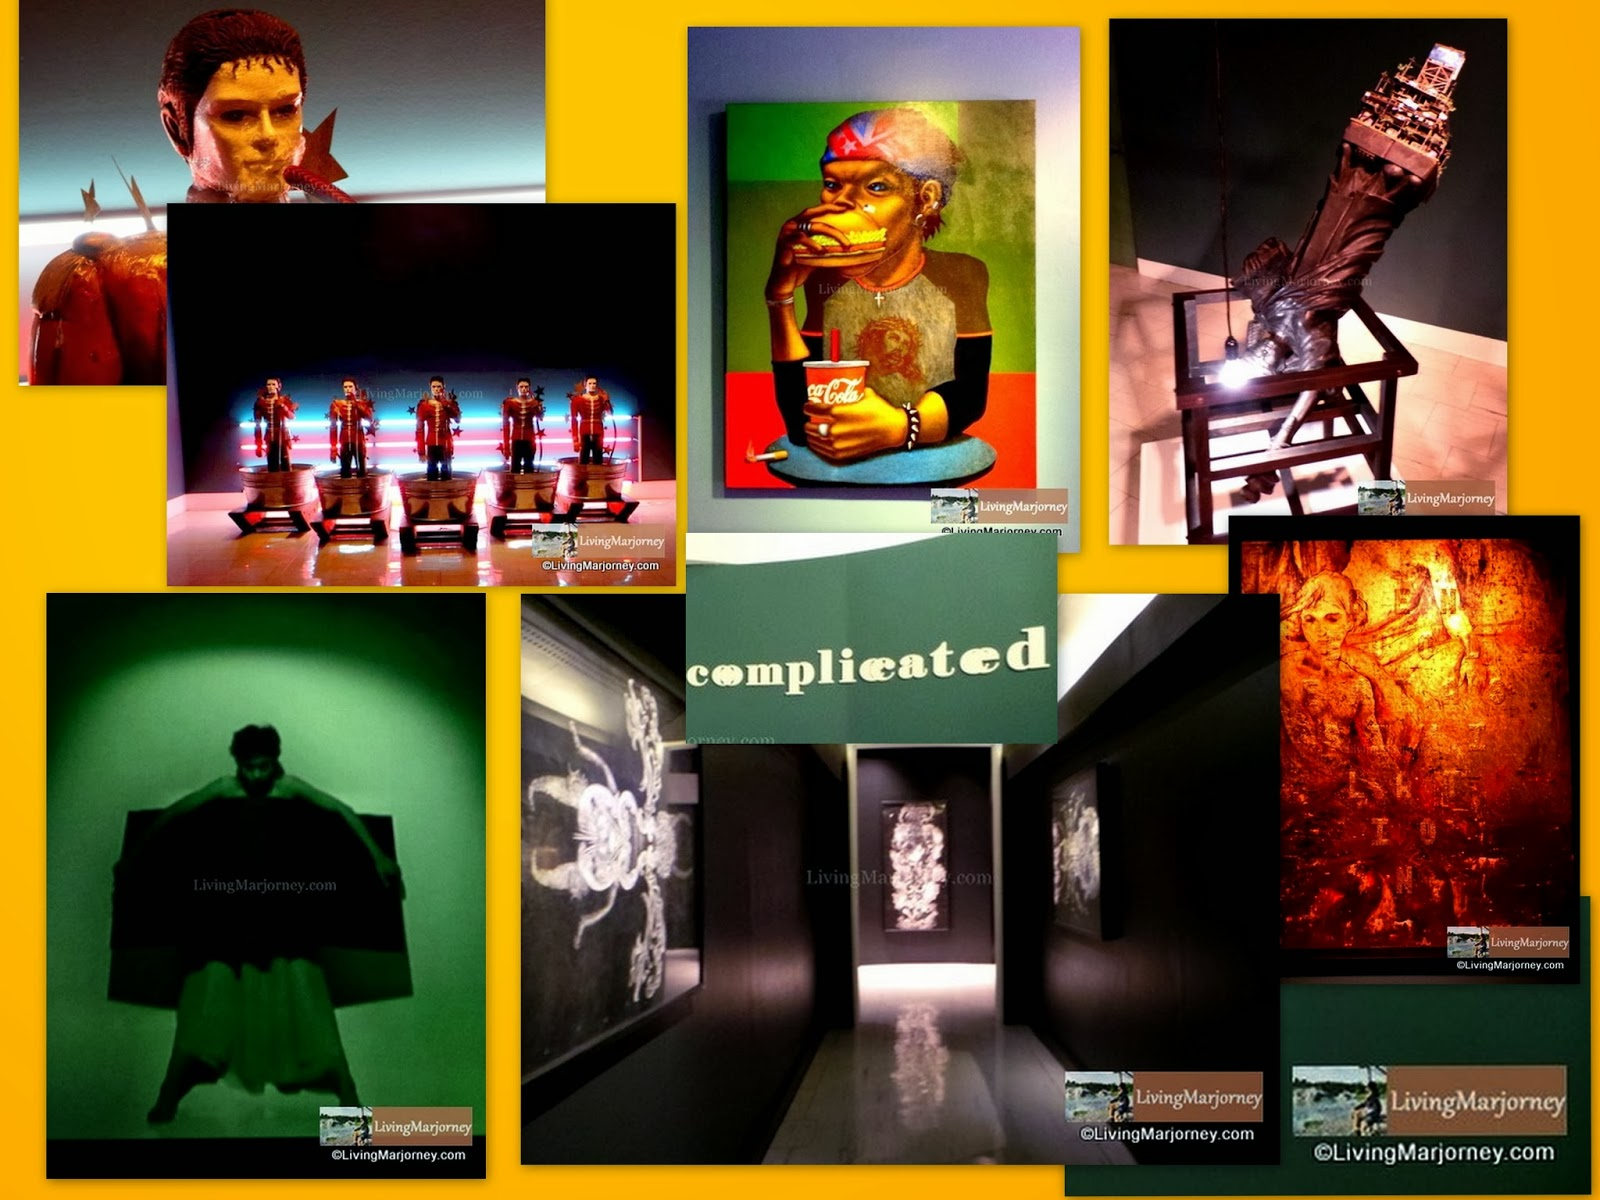 'Complicated' at the Lopez Museum